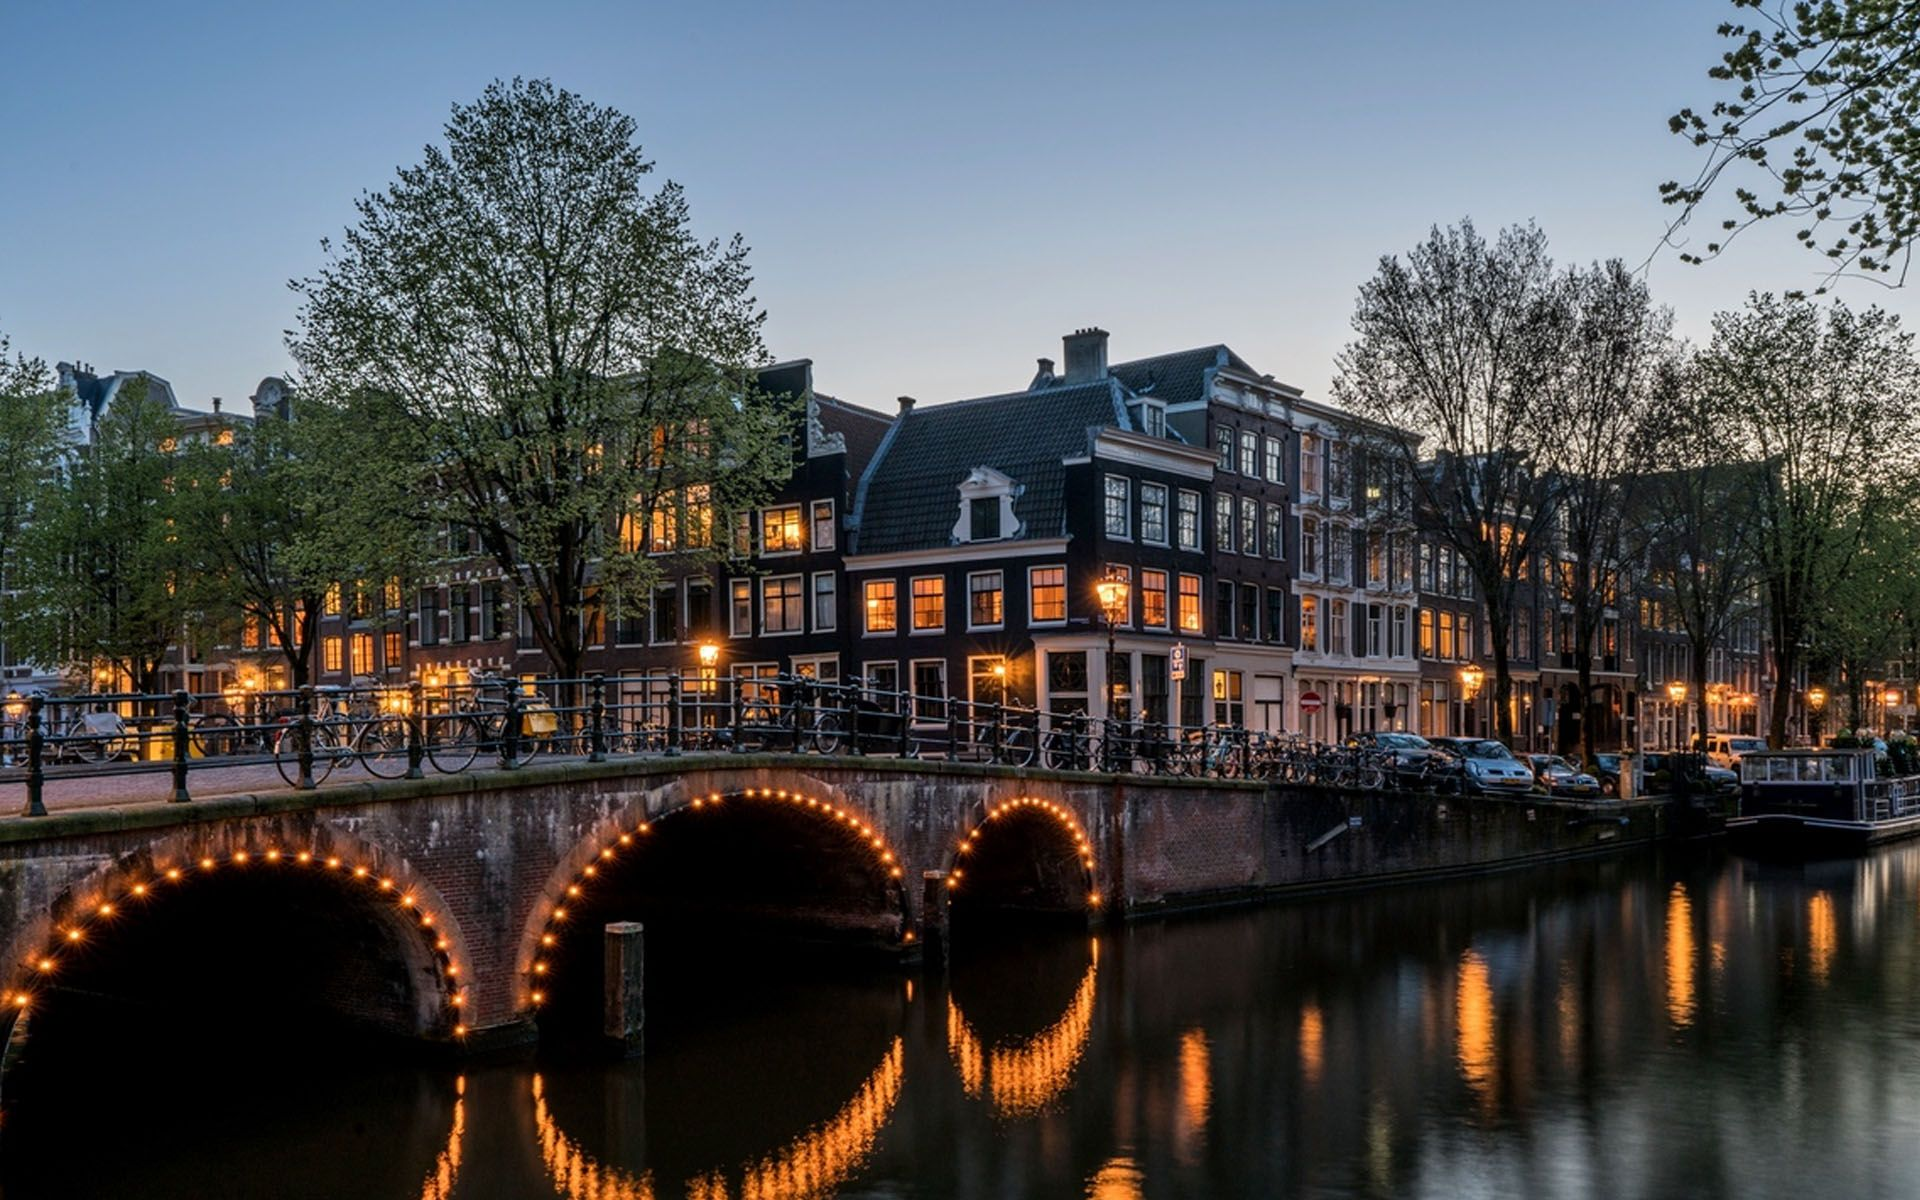 Canal Houses Amsterdam Hd Wallpaper With Images Canal House